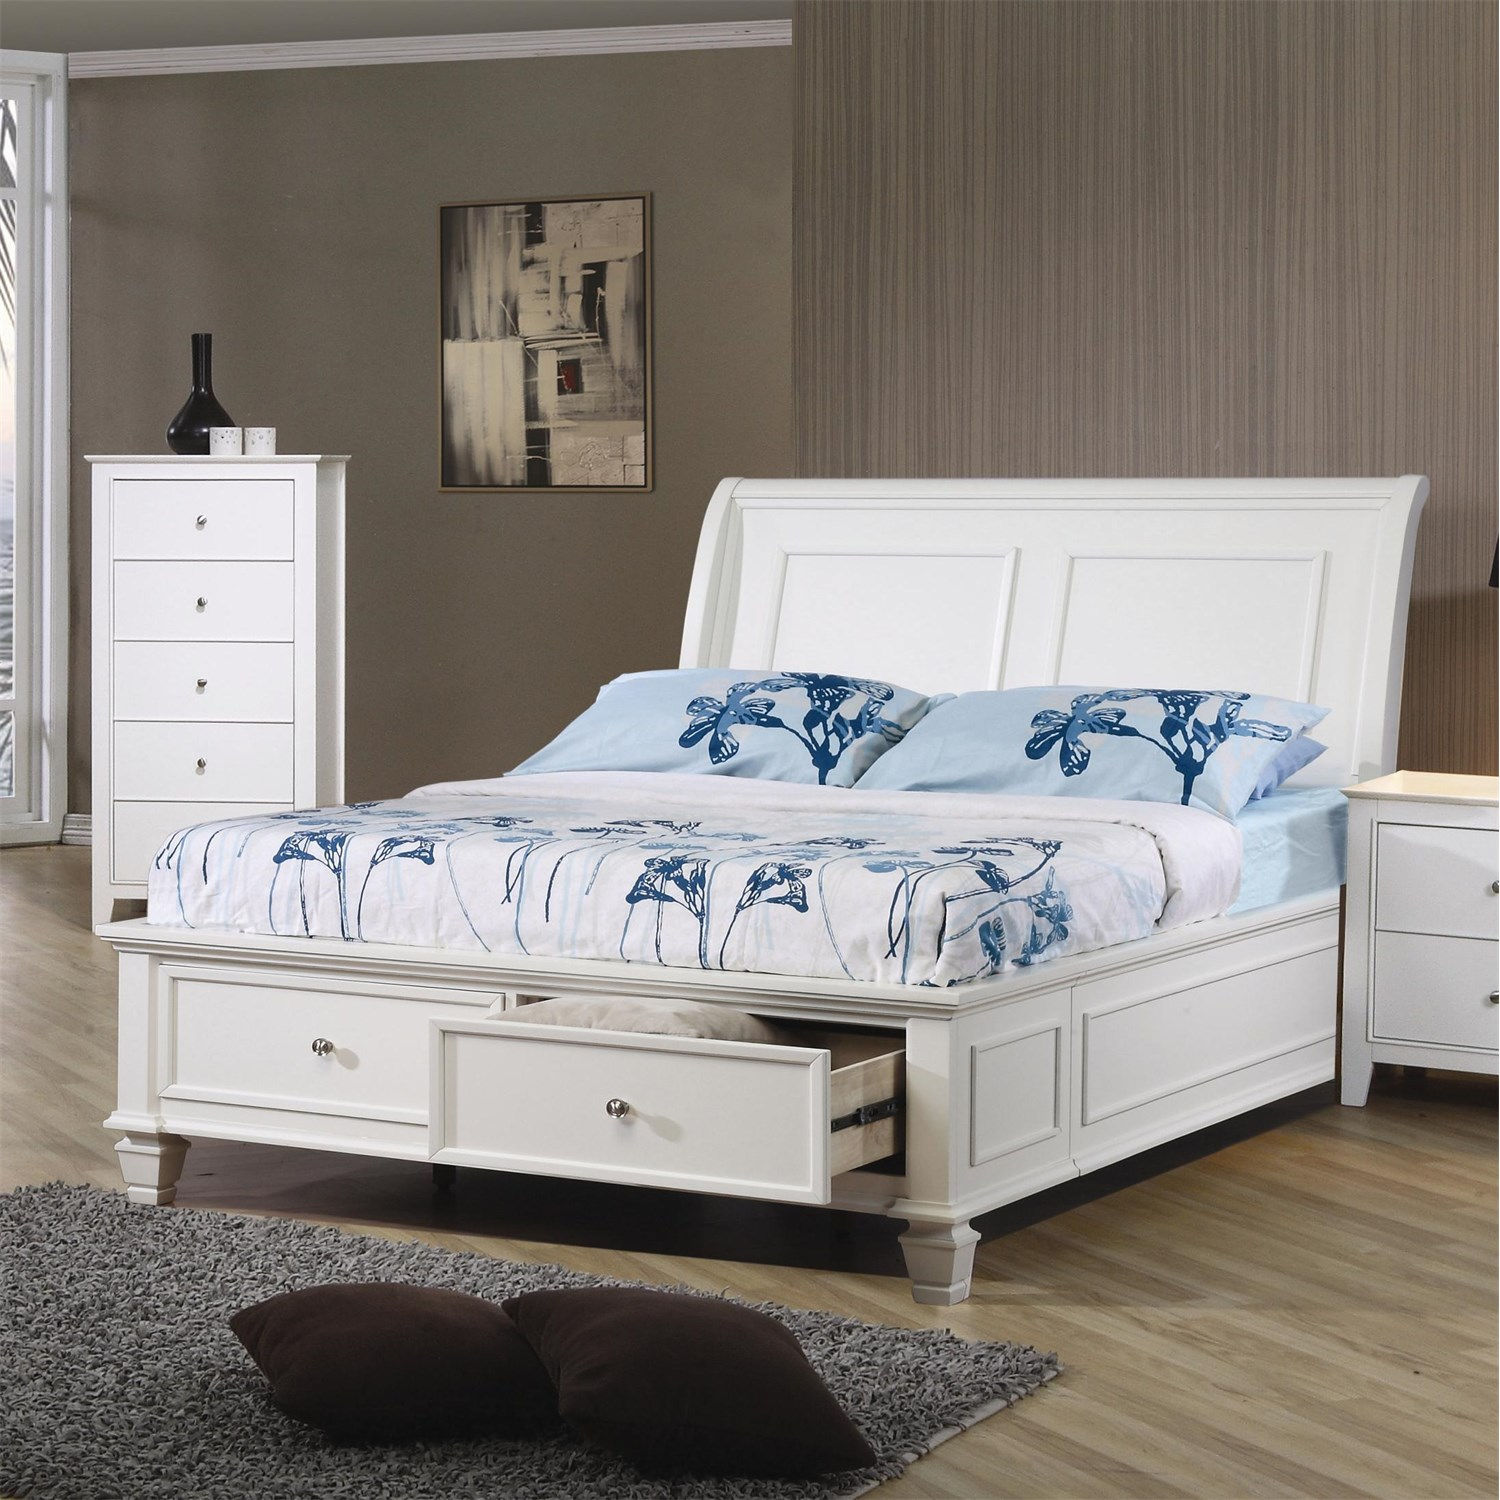 Sandy Beach Whtie California King Sleigh Bed With Footboard Storage